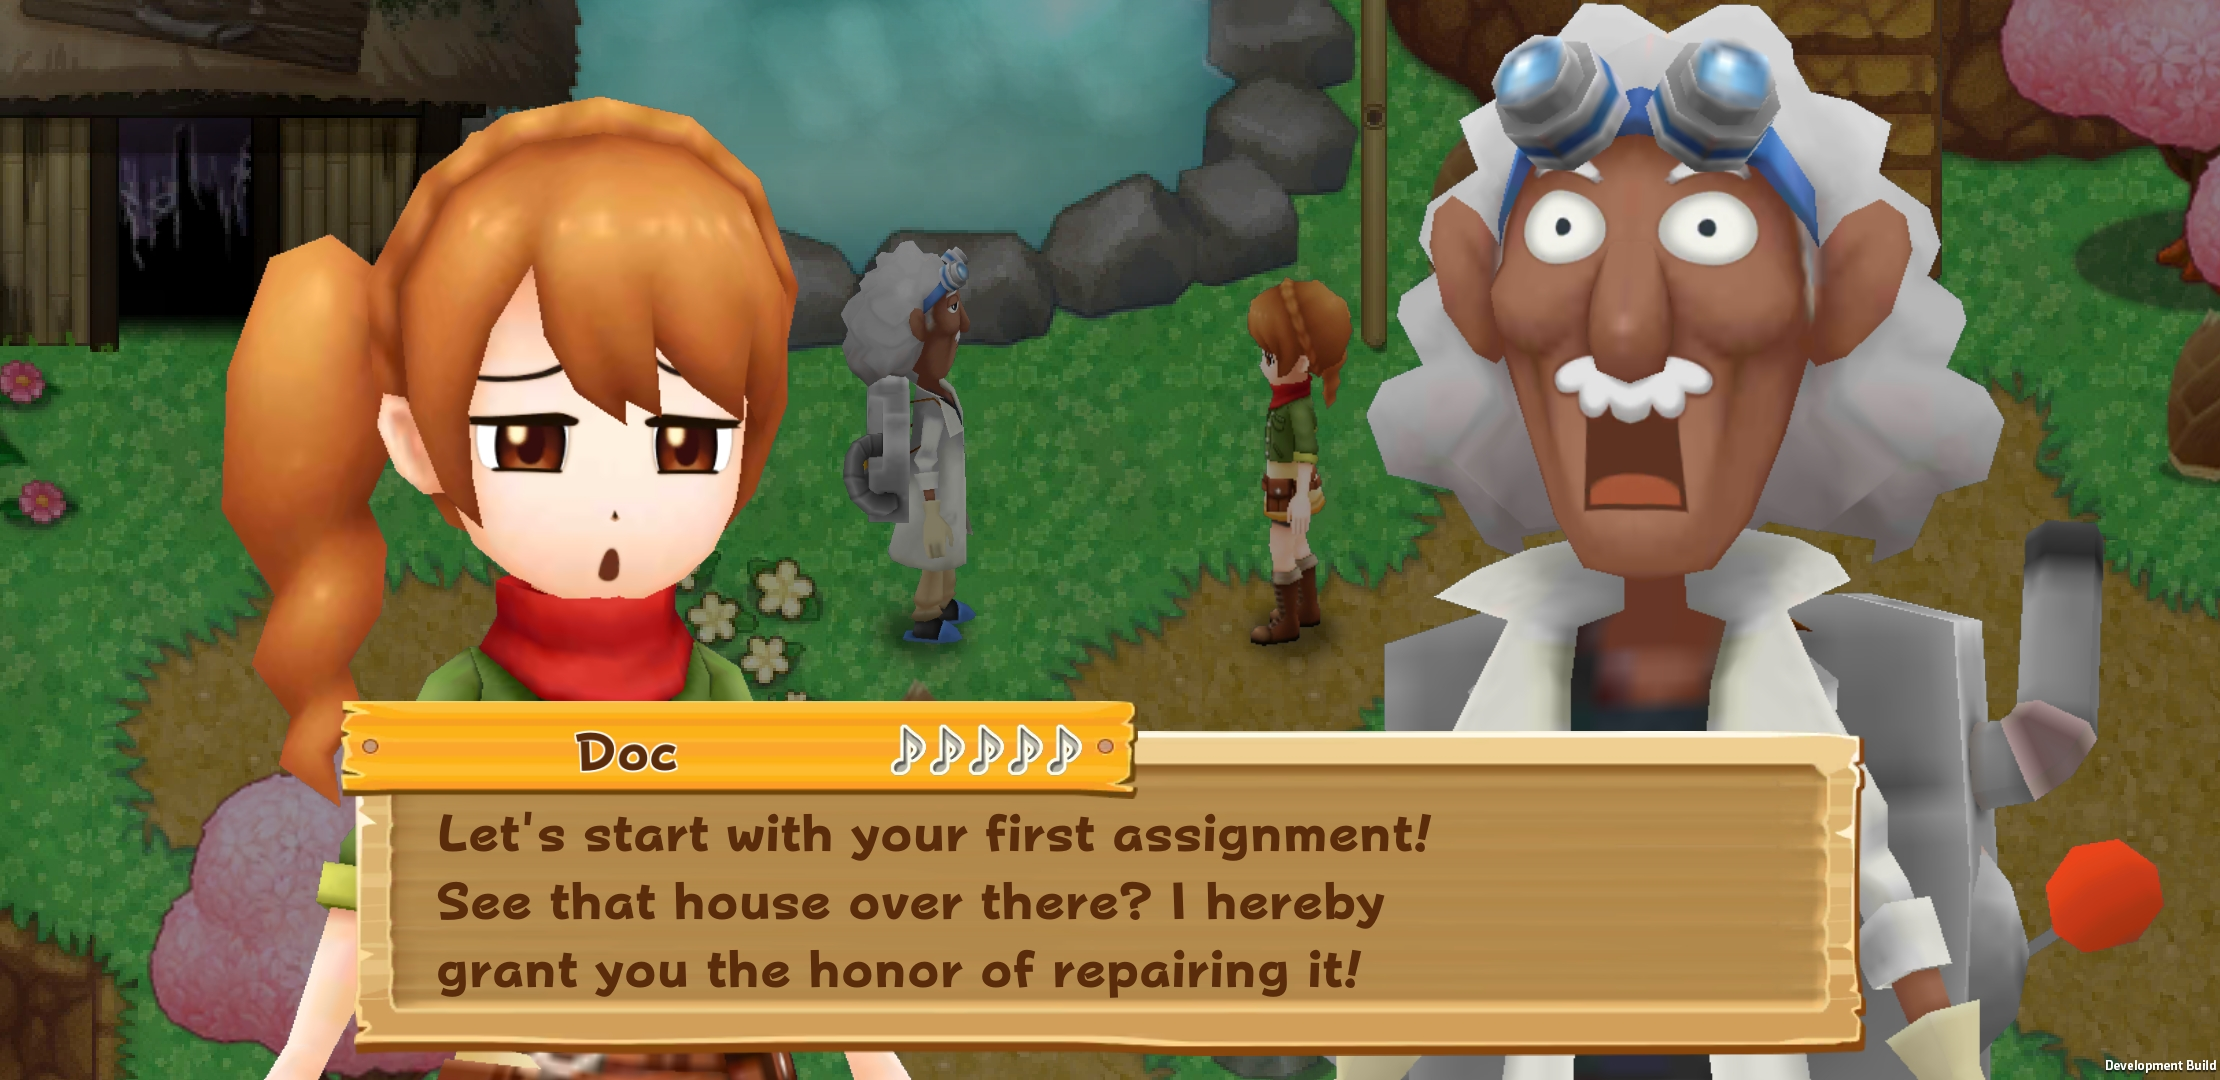 harvest-moon-light-of-hope-for-ios-android-coming-soon2-frikigamers.com.jpg